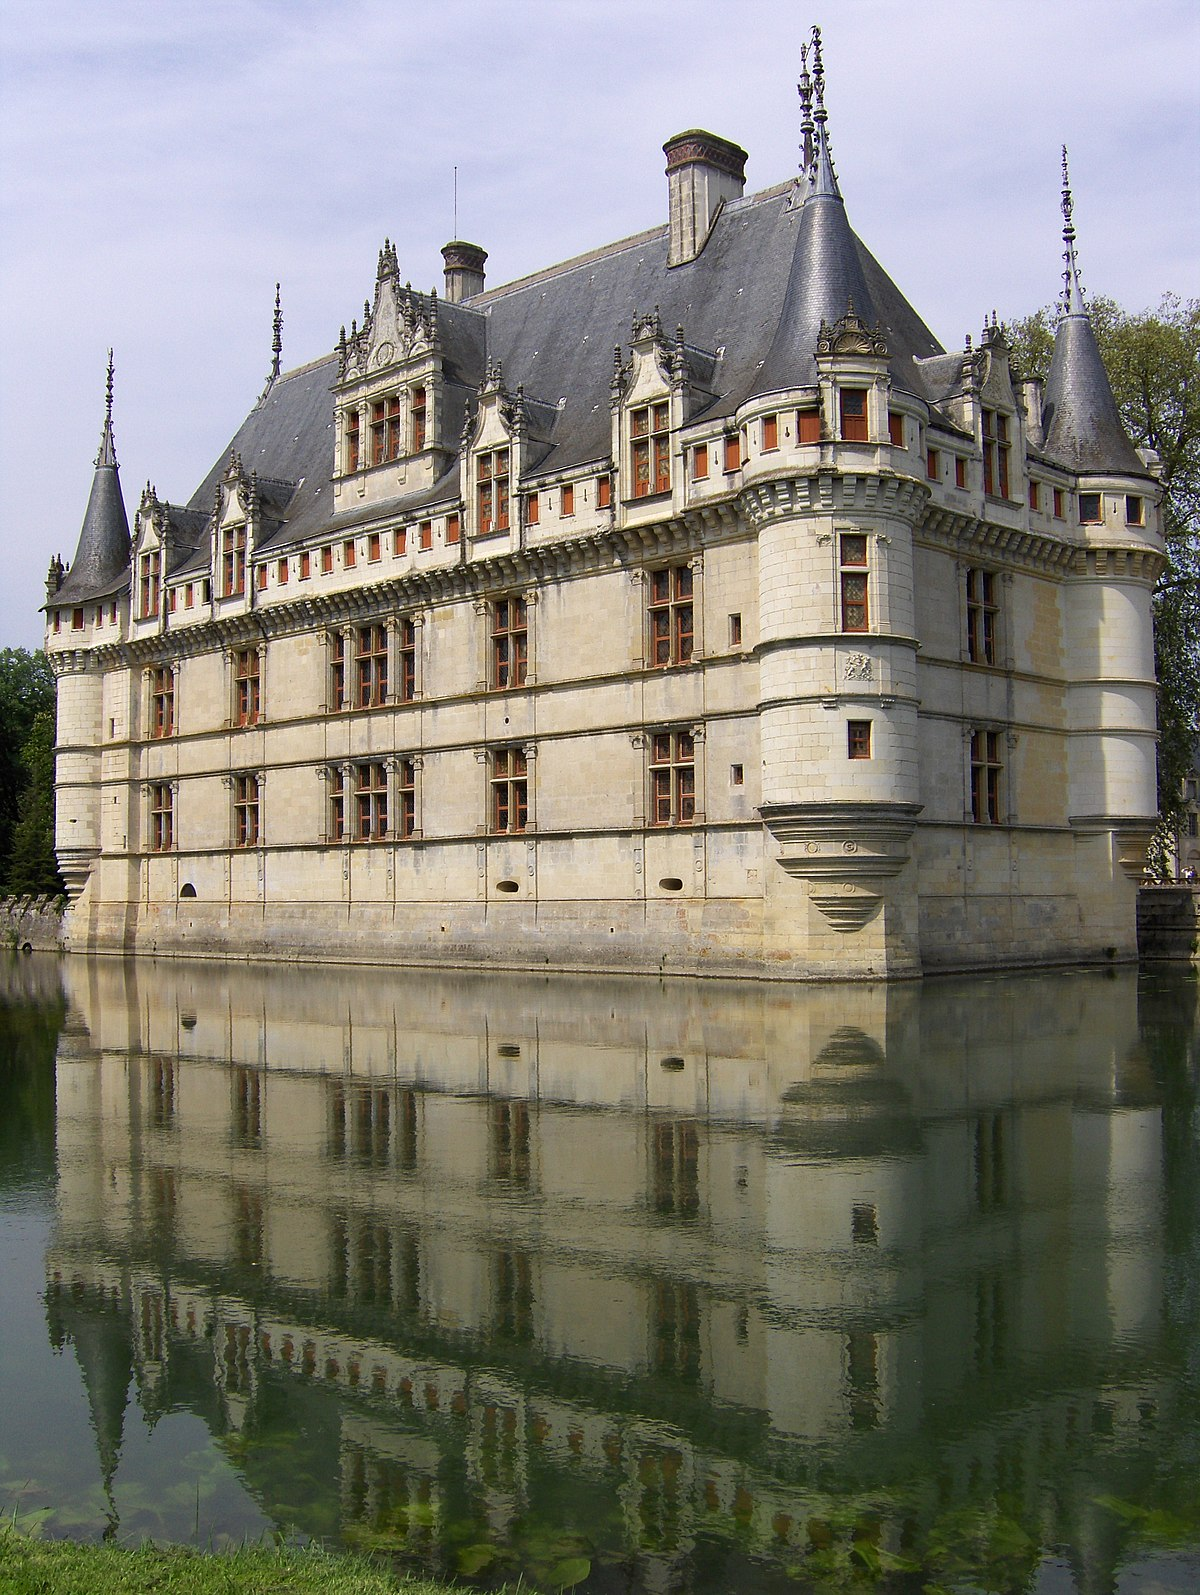 castello di azay le rideau wikipedia. Black Bedroom Furniture Sets. Home Design Ideas